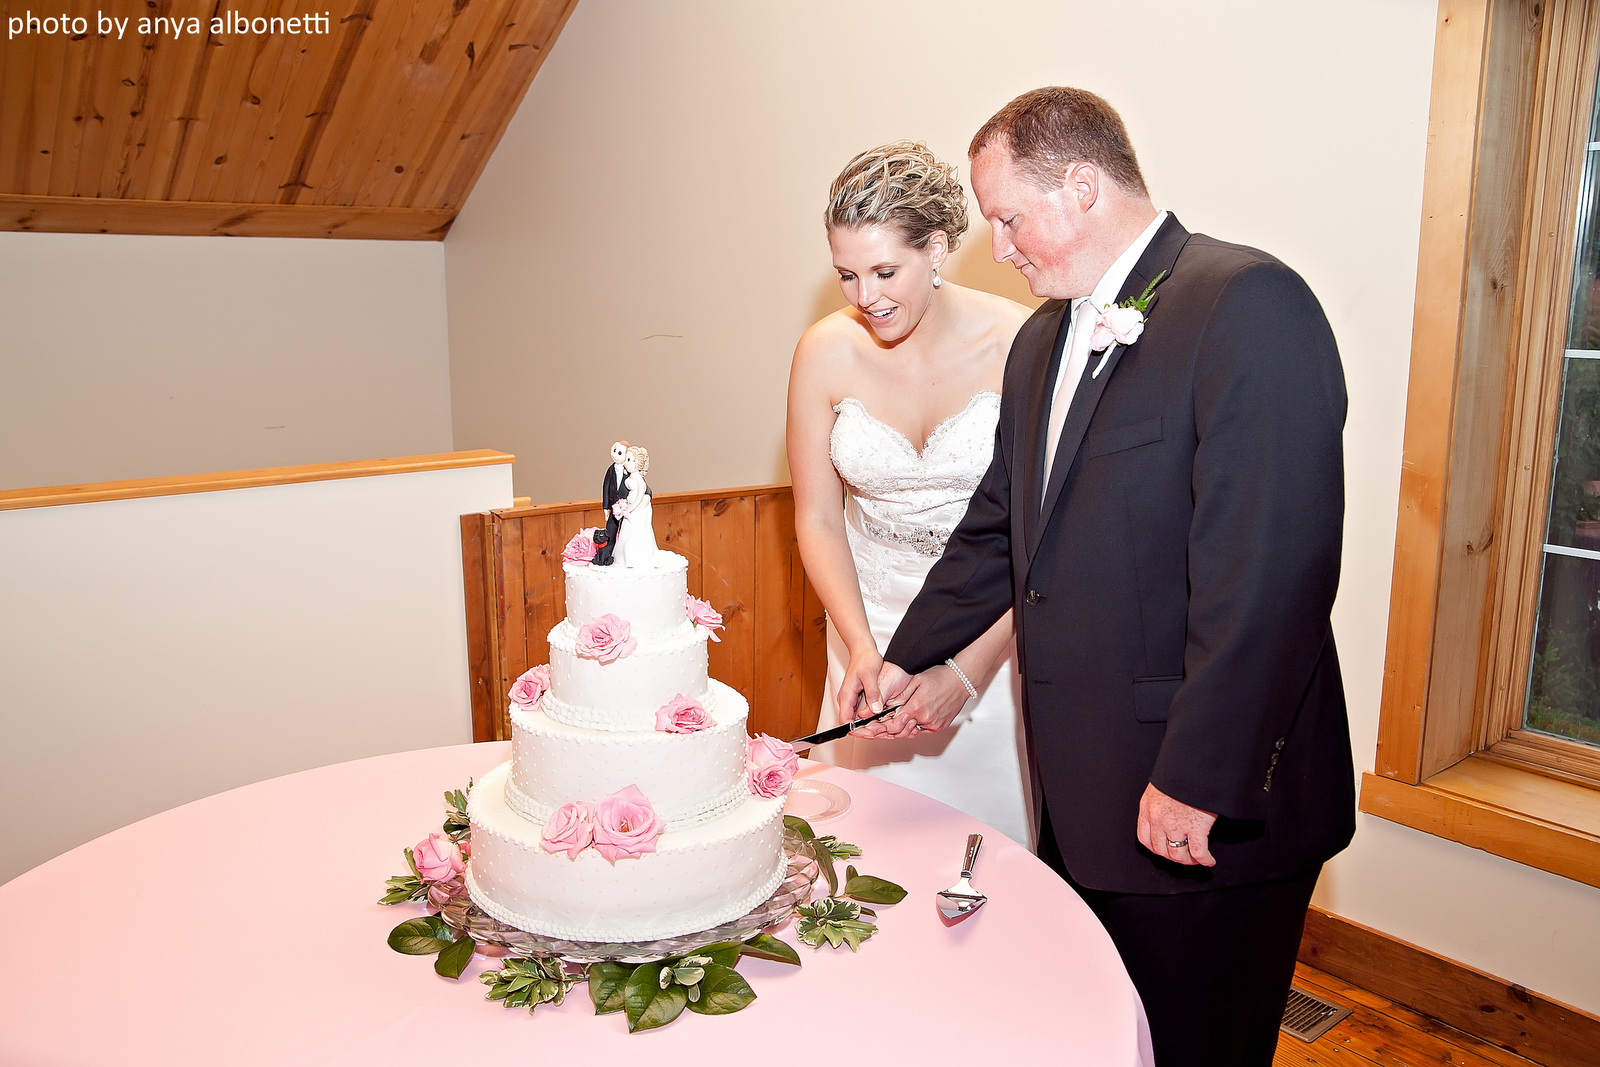 Cake Cutting At Wedding Meaning Life Size Barbie Images